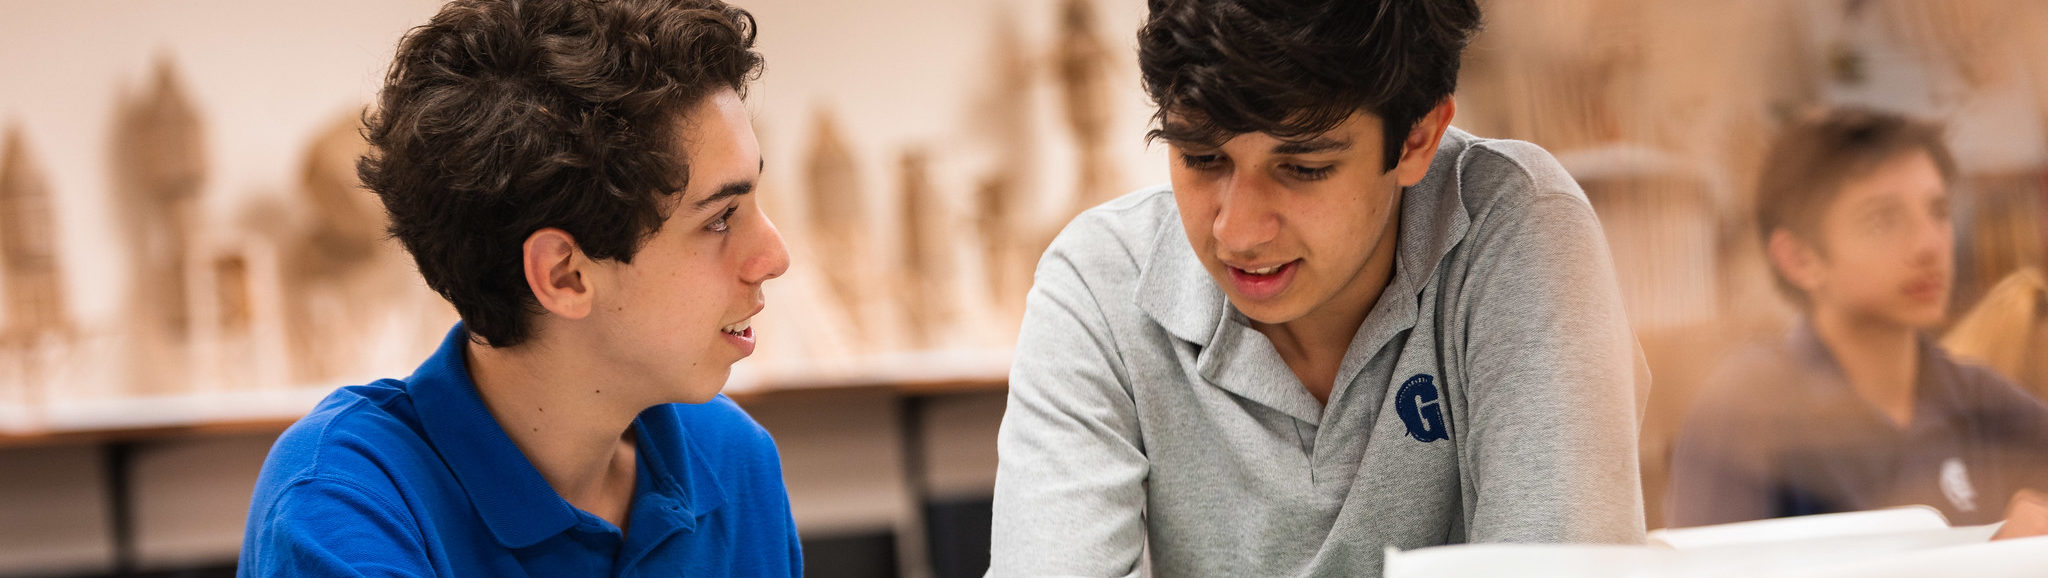 Two students talking.